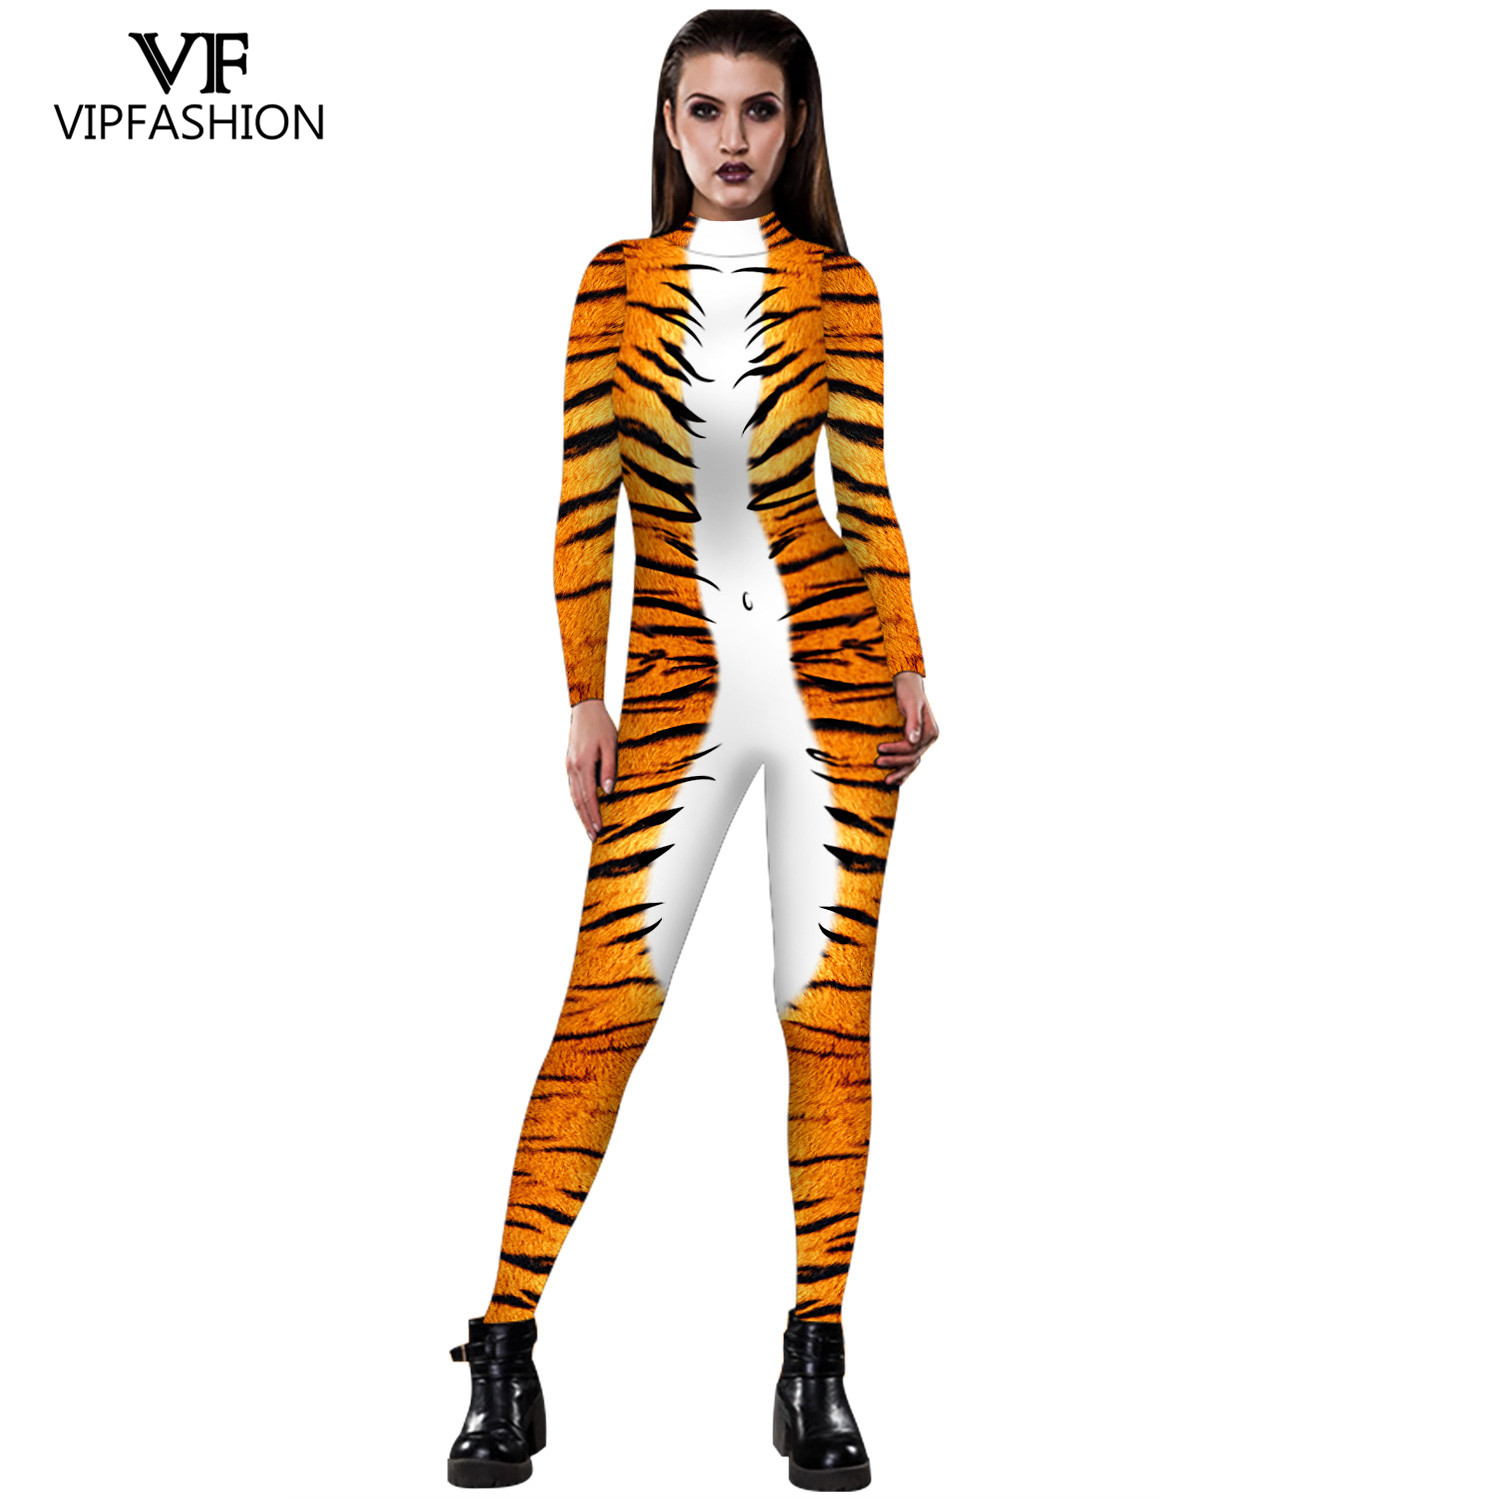 VIP FASHION Halloween Cosplay Costumes Leopard 3D Printing Animal Zentai Snake Bodysuit Suit Jumpsuits